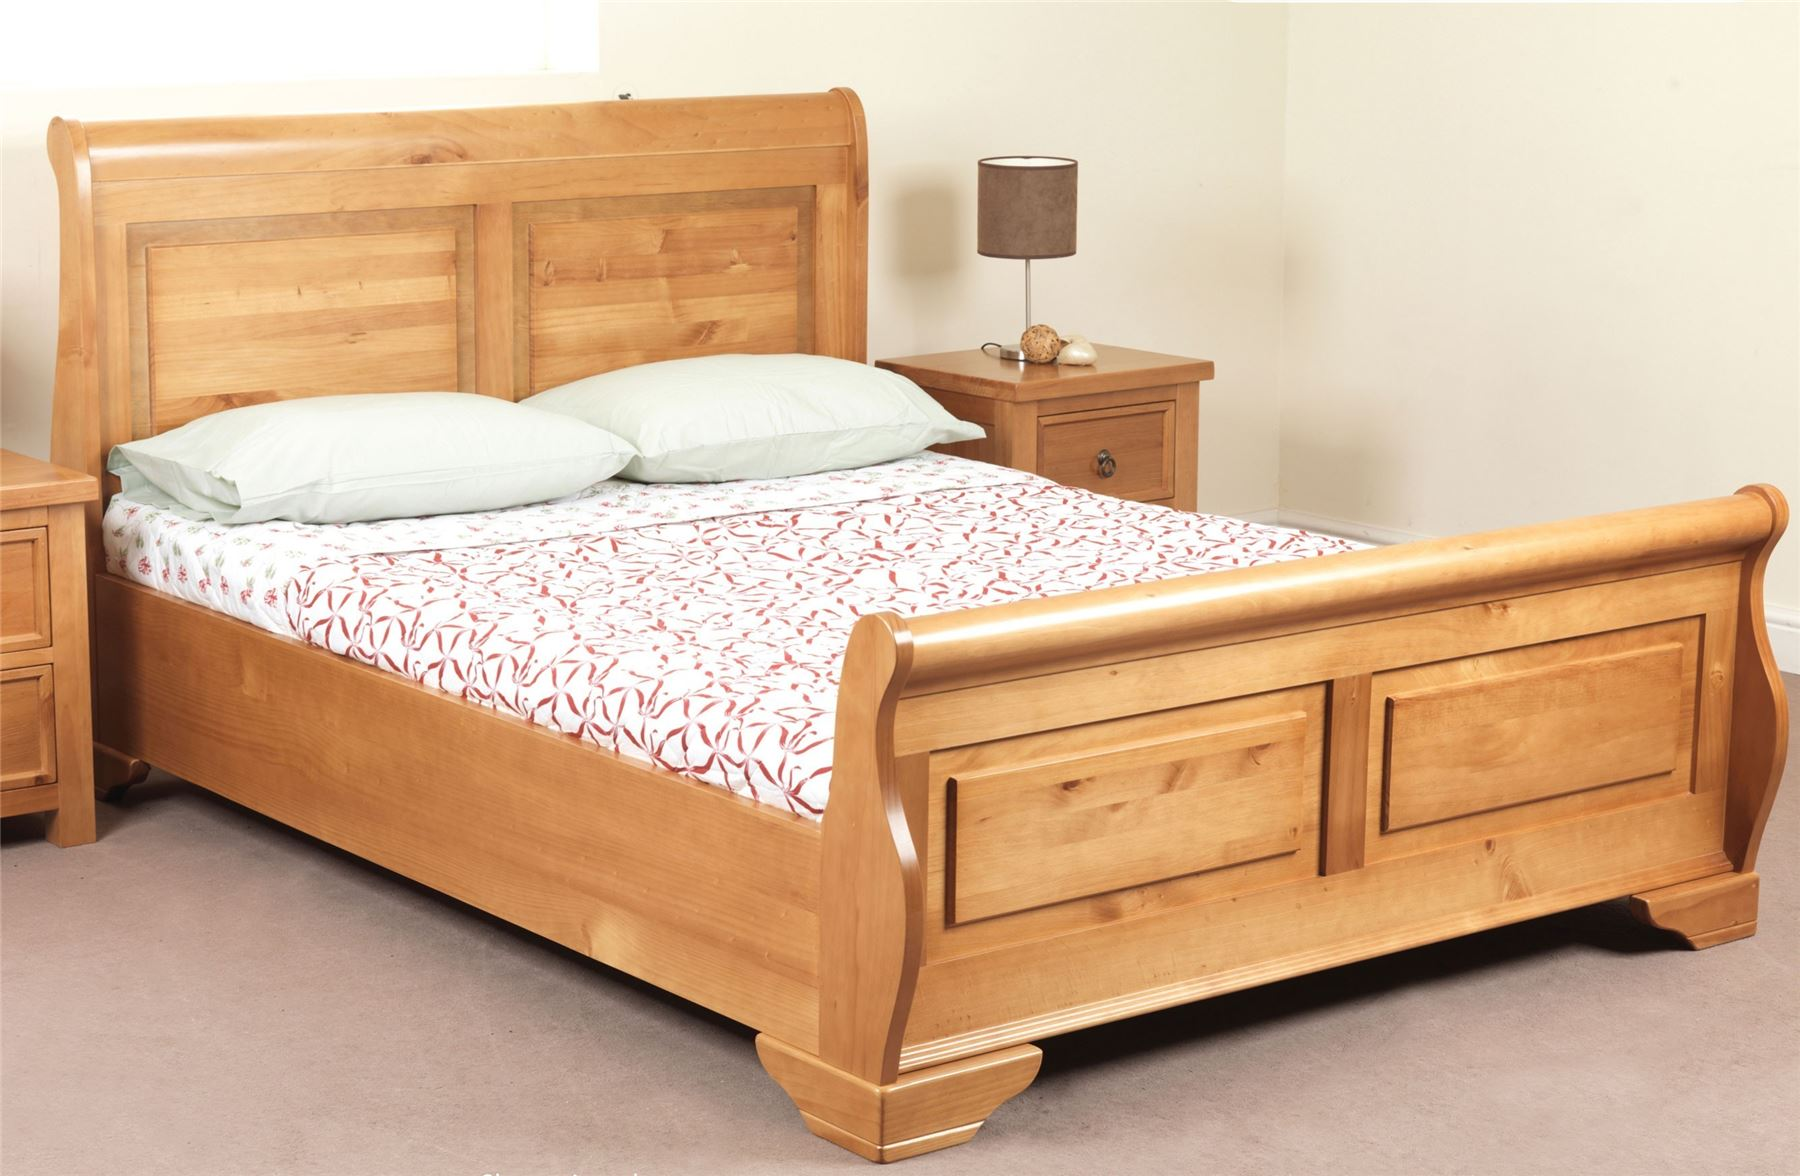 Sweet Dreams Jackdaw Oak Sleigh Bed Frame 135cm Double